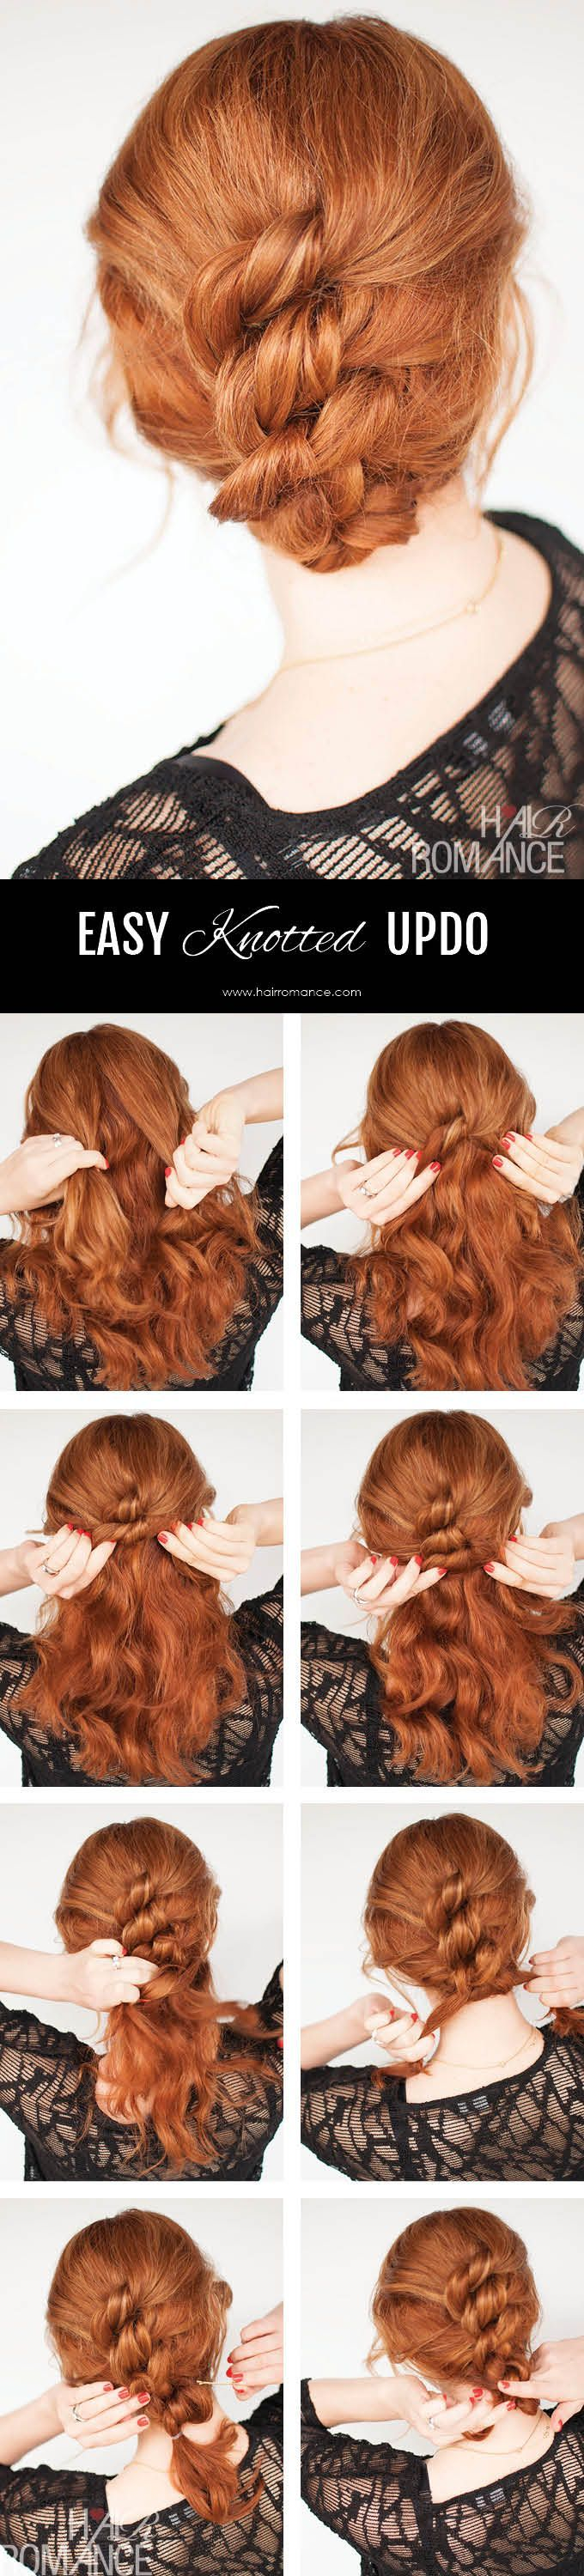 Hair Romance - Easy knot updo hair tutorial